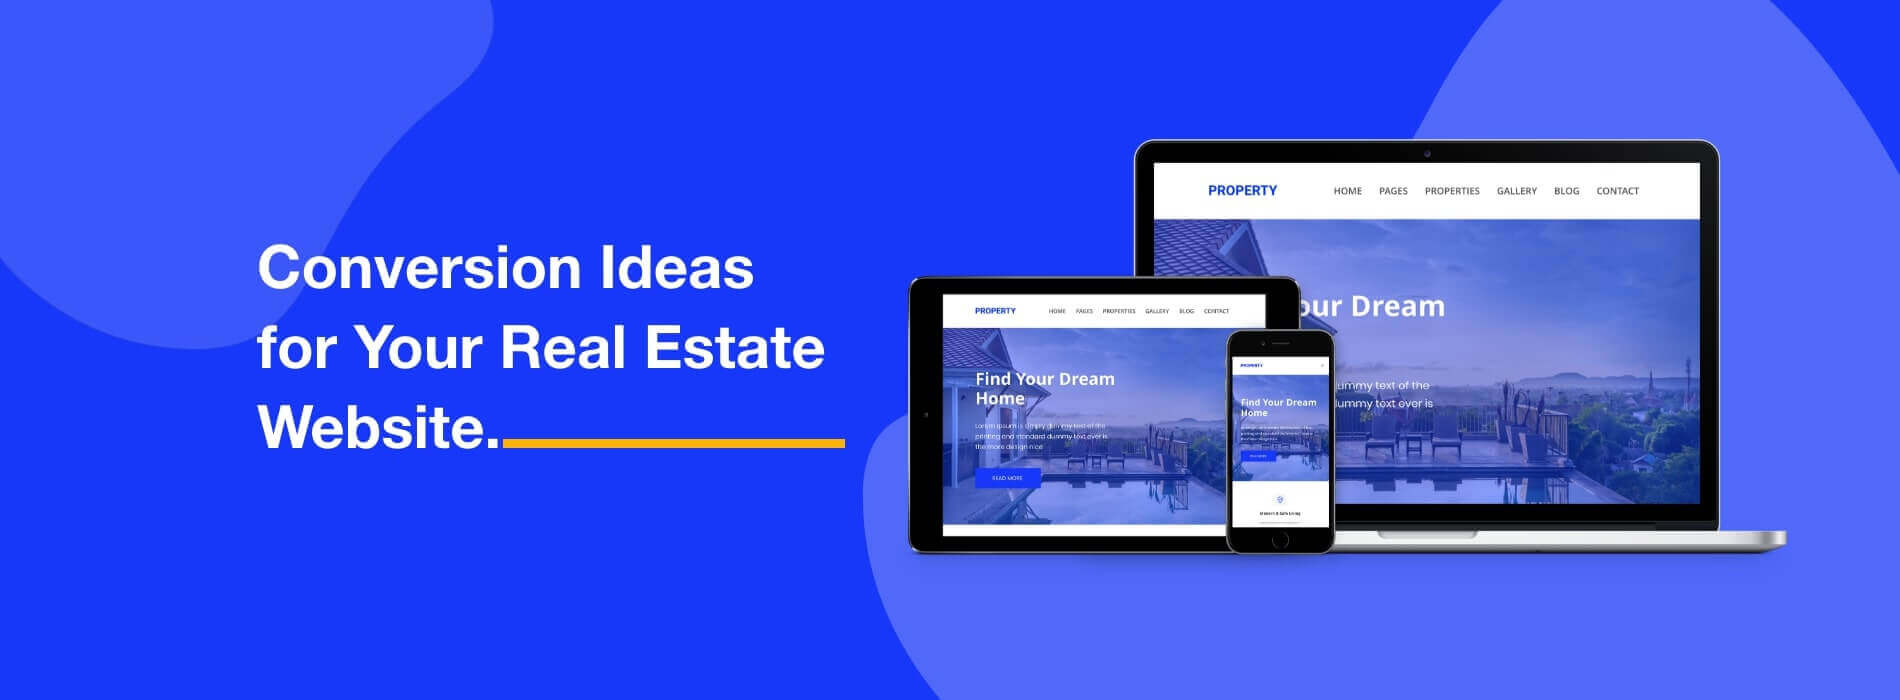 Tried-and-True Conversion Ideas for Your Real Estate Website